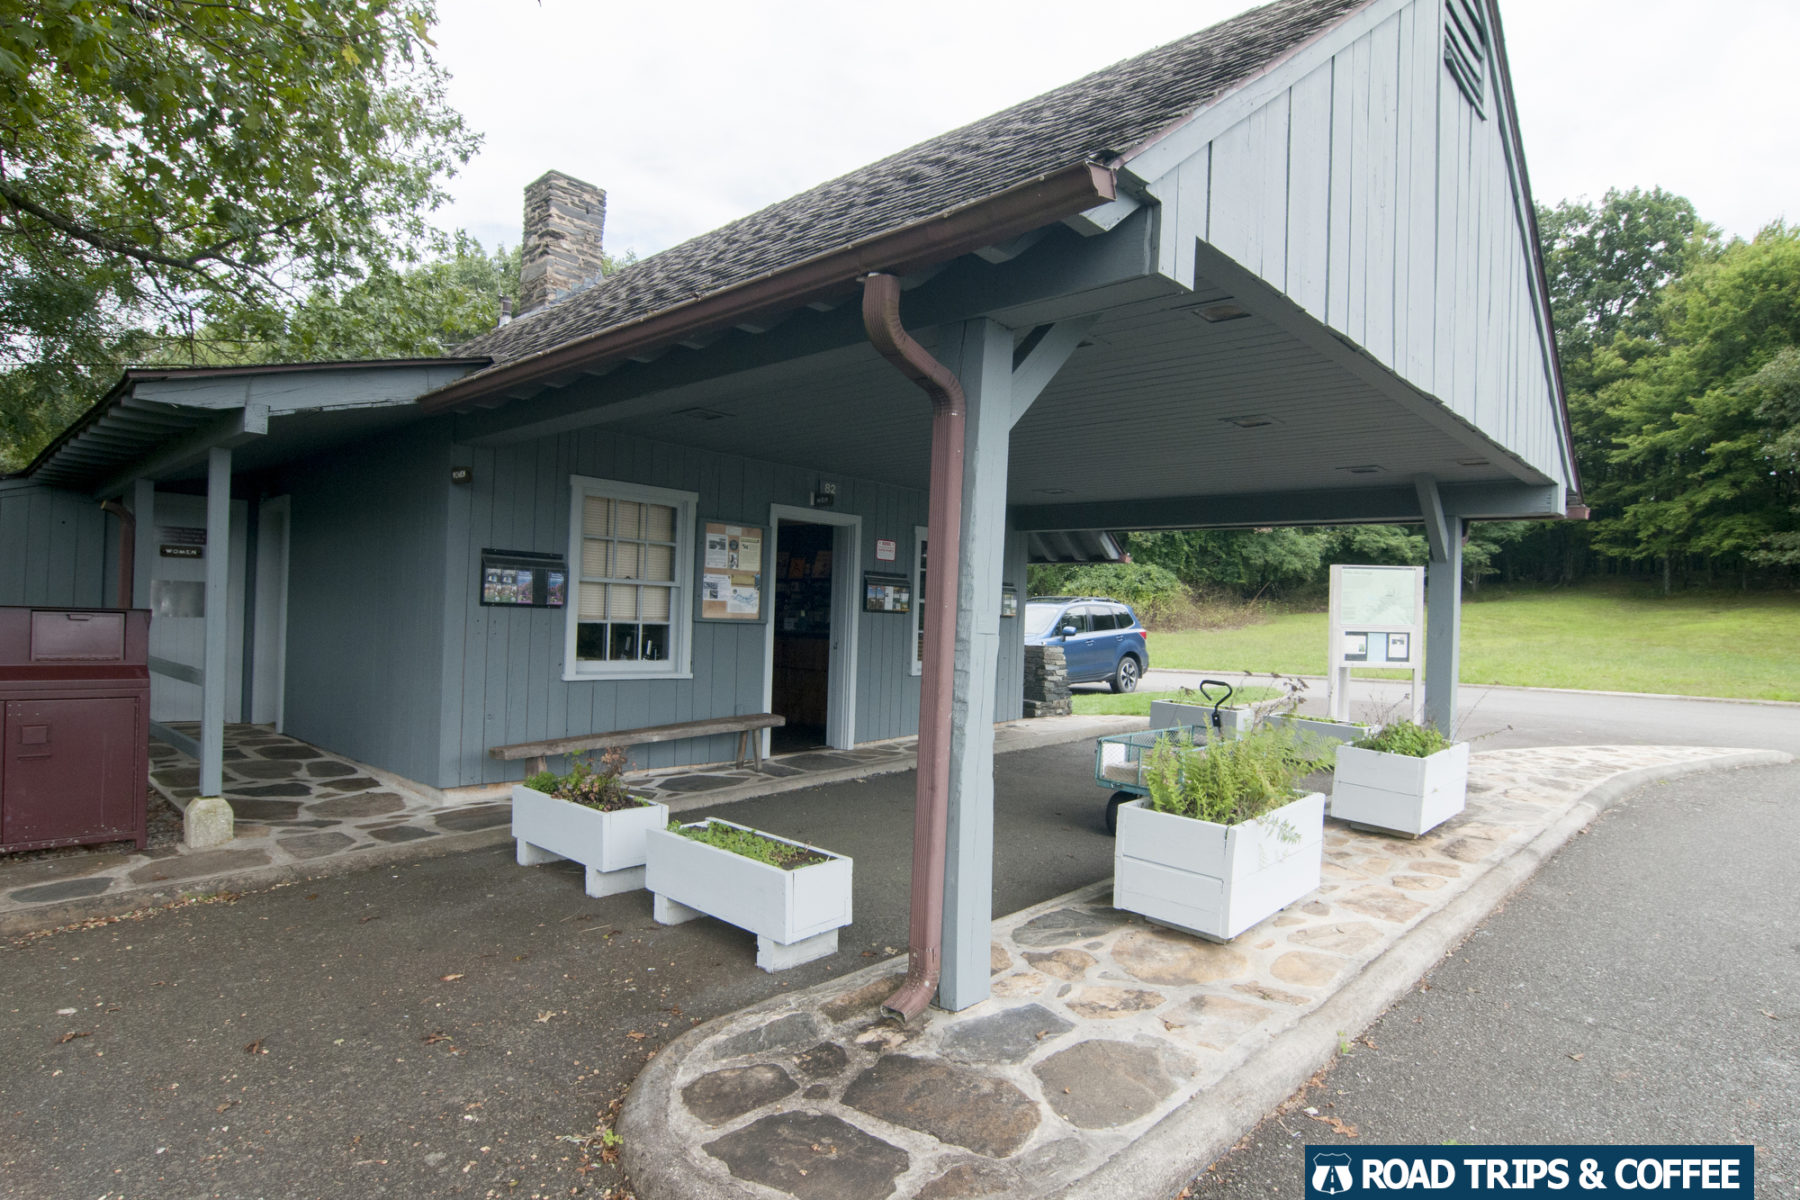 The former gas station turned into the Rocky Knob Visitor Center on the Blue Ridge Parkway in Virginia